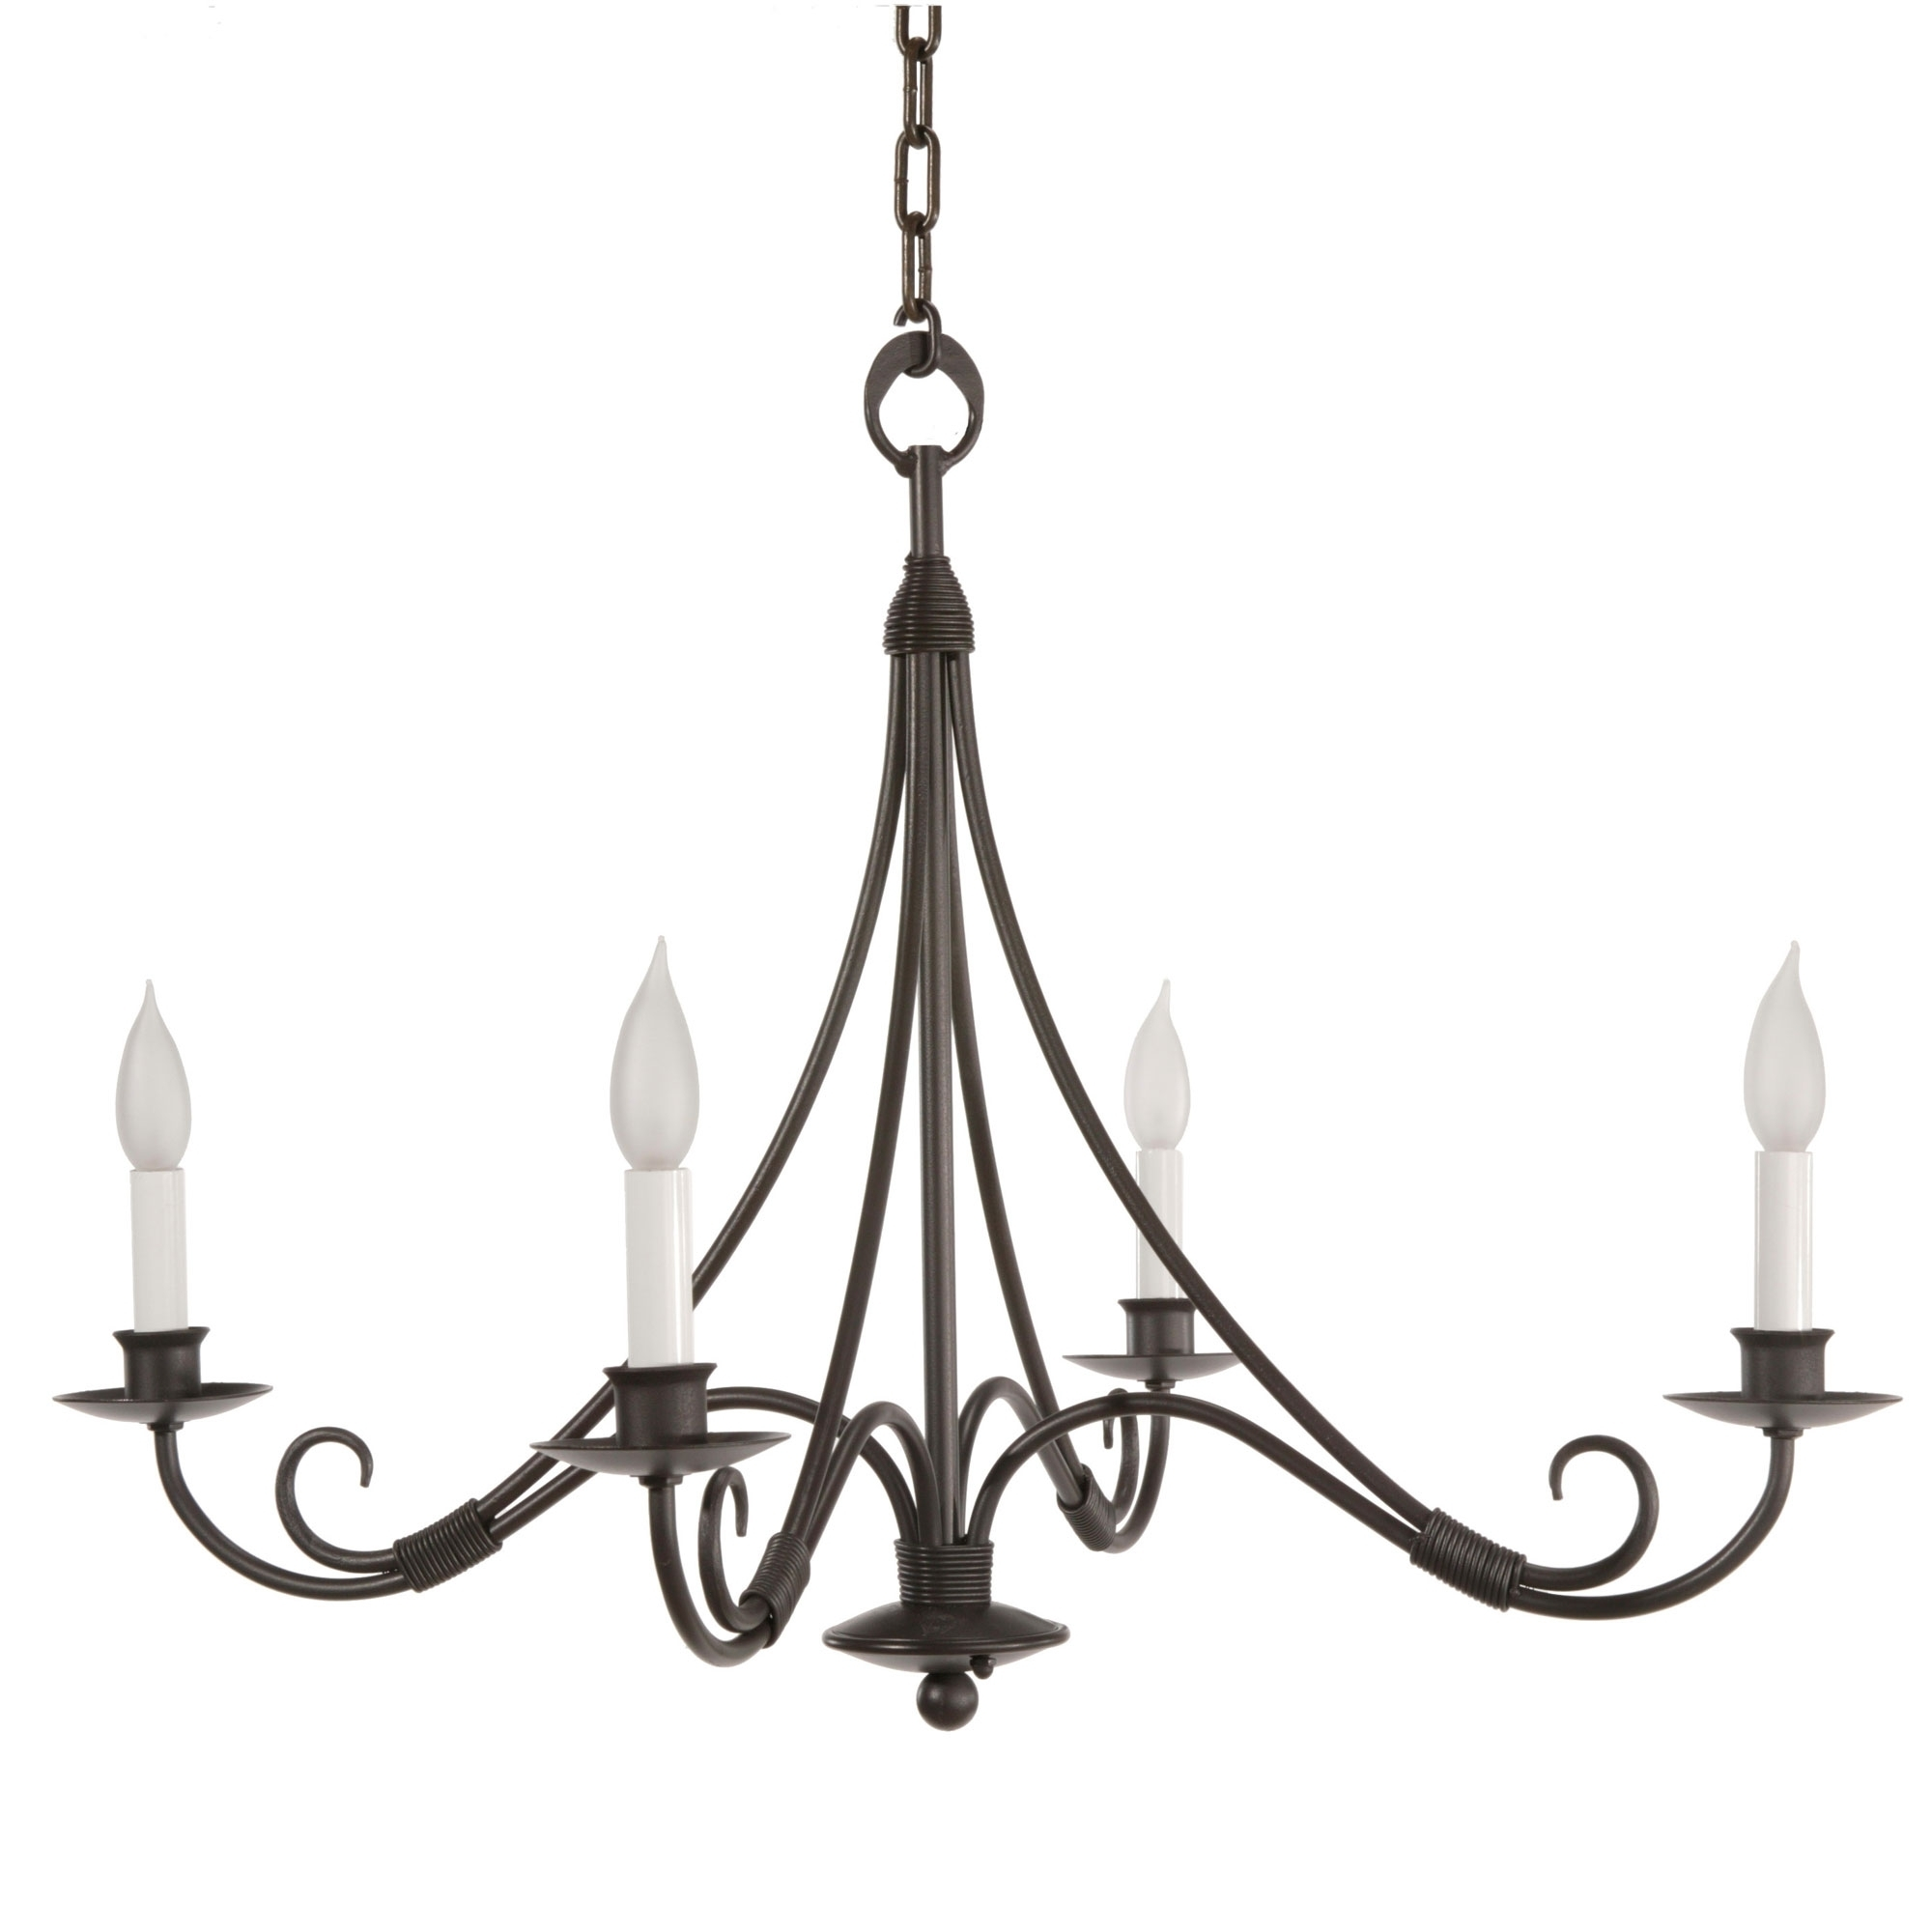 Chandeliers Design : Wonderful Black Iron Chandelier Bedroom Lights In Fashionable Black Iron Chandeliers (View 12 of 20)